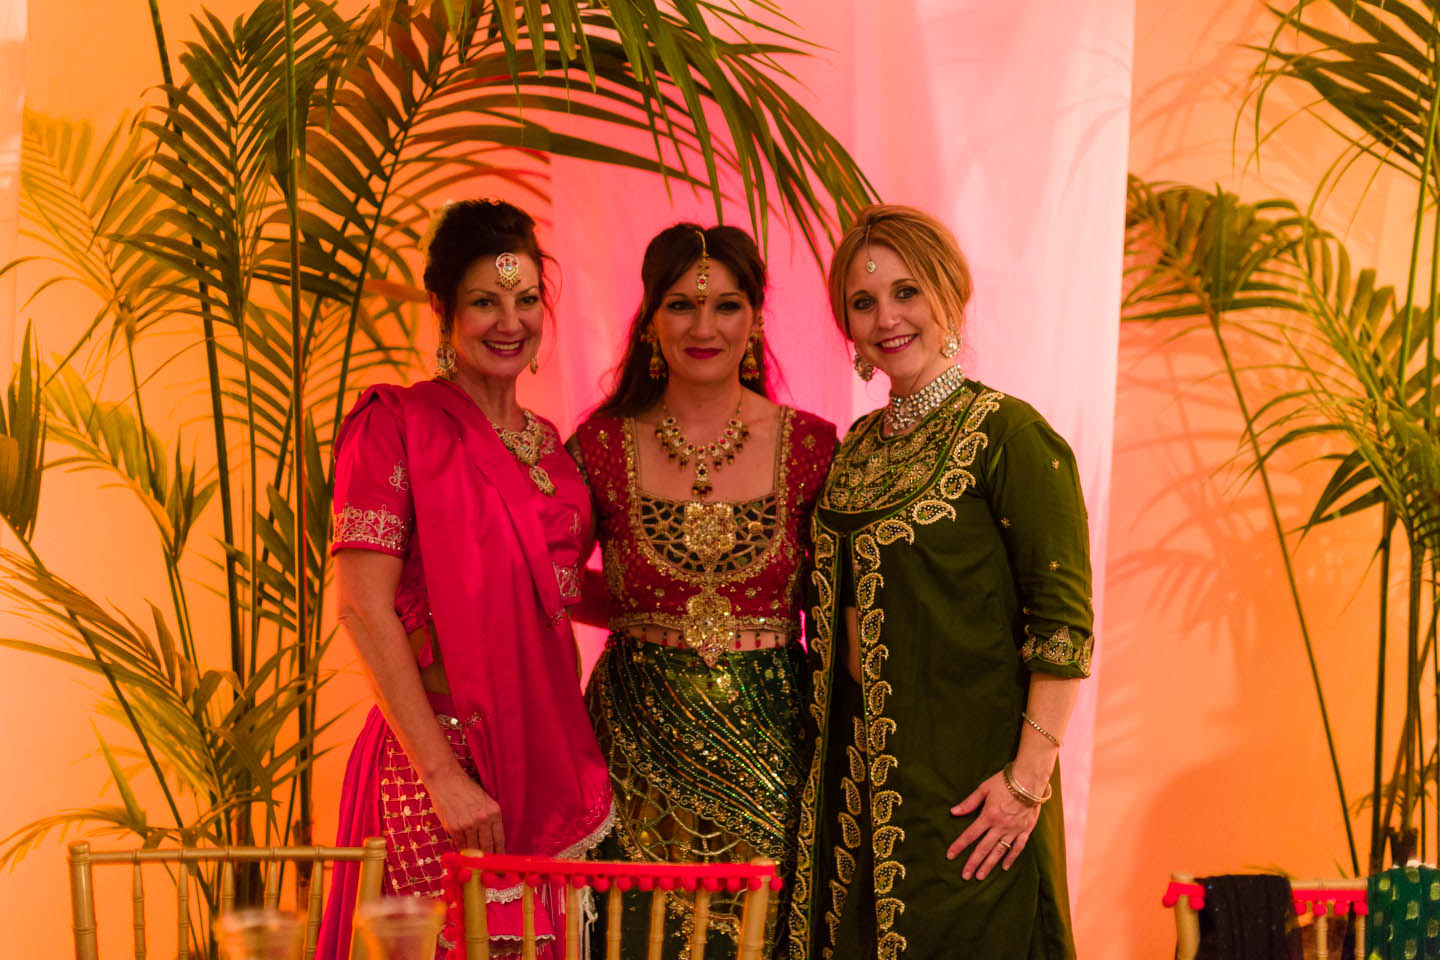 Bride with others wearing the traditional Indian wear